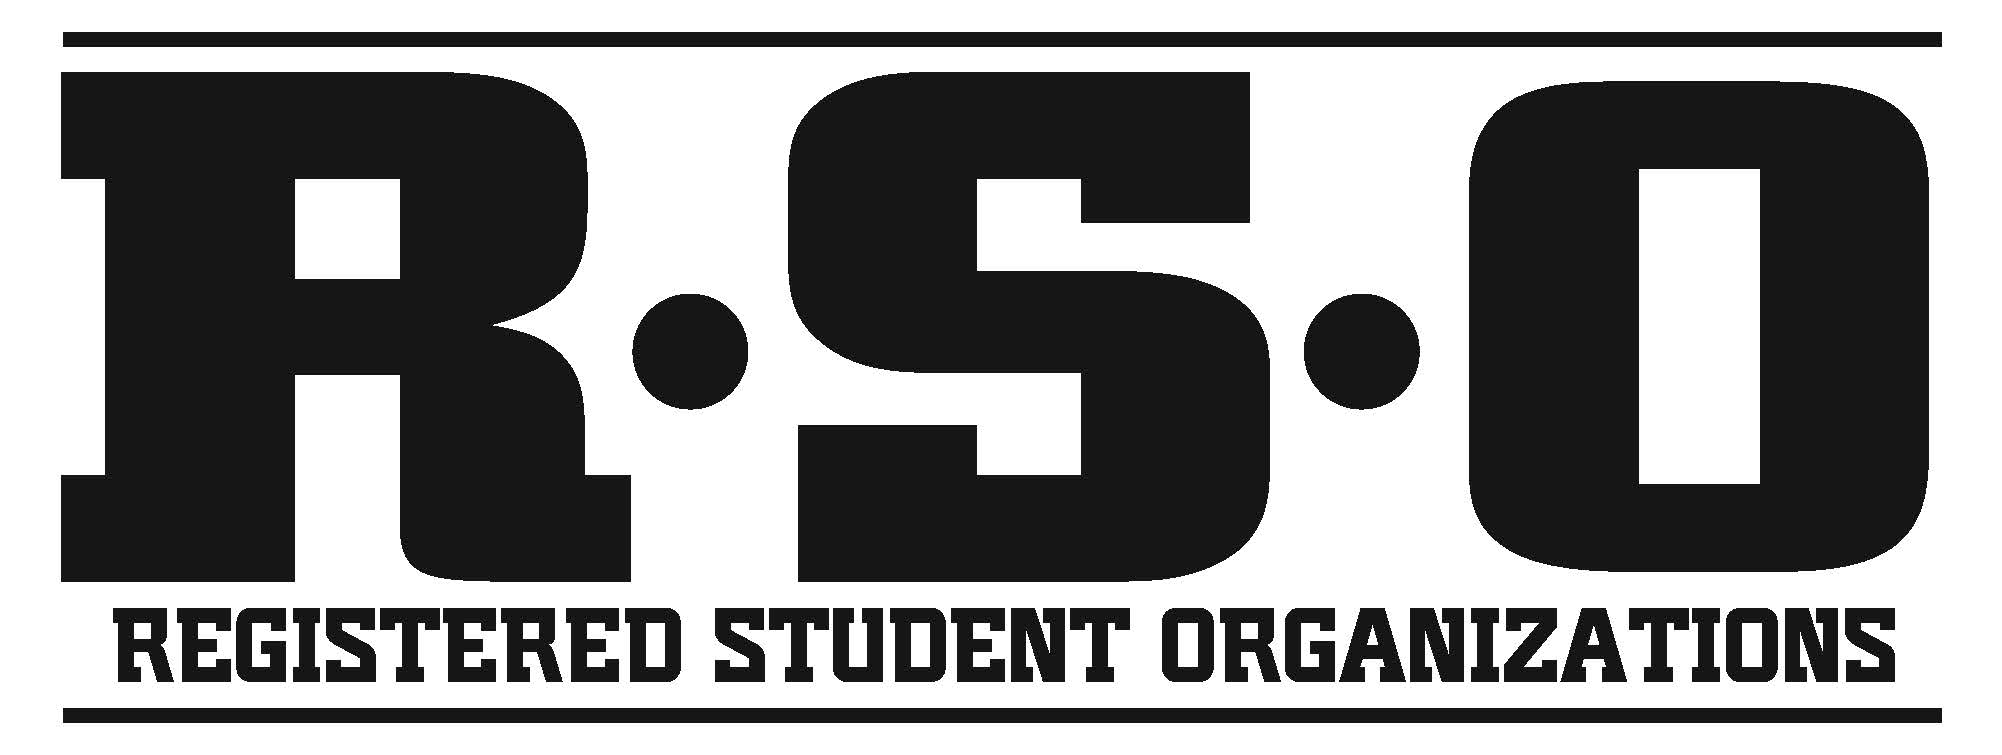 Registered Student Organization